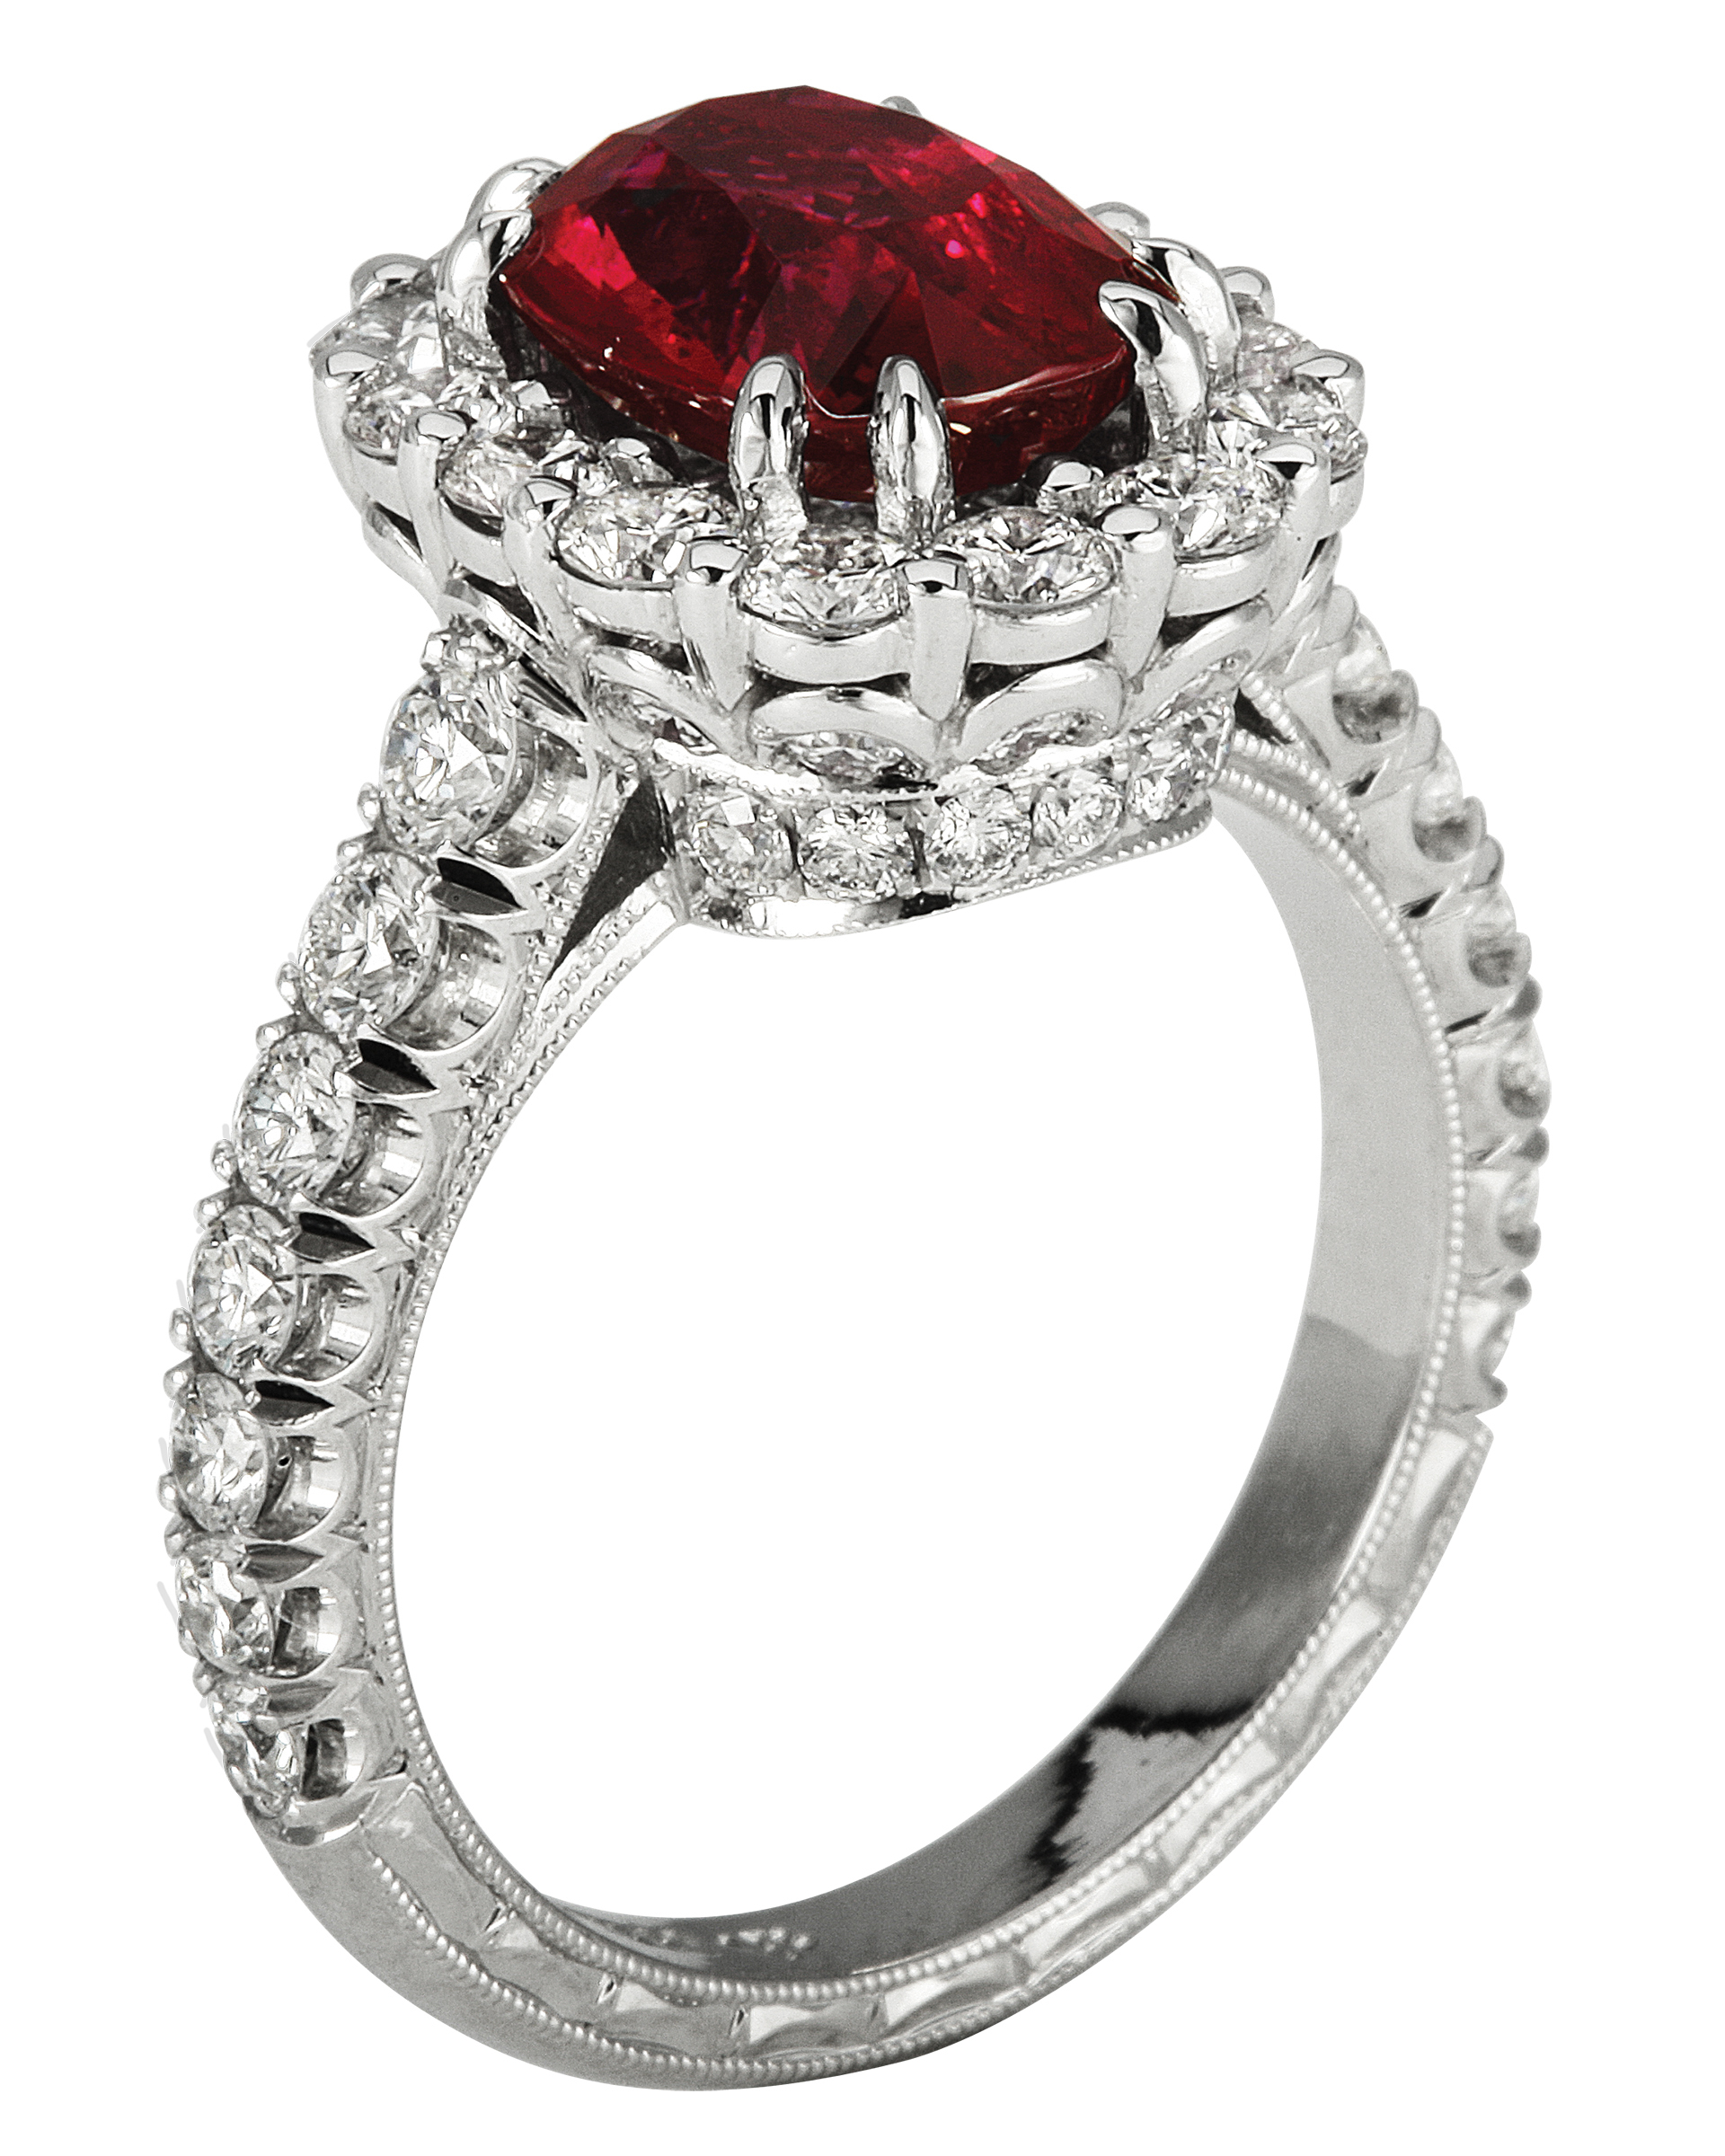 jack-kelege-ruby-engagement-ring-diamond-halo-and-shank-0816.jpg